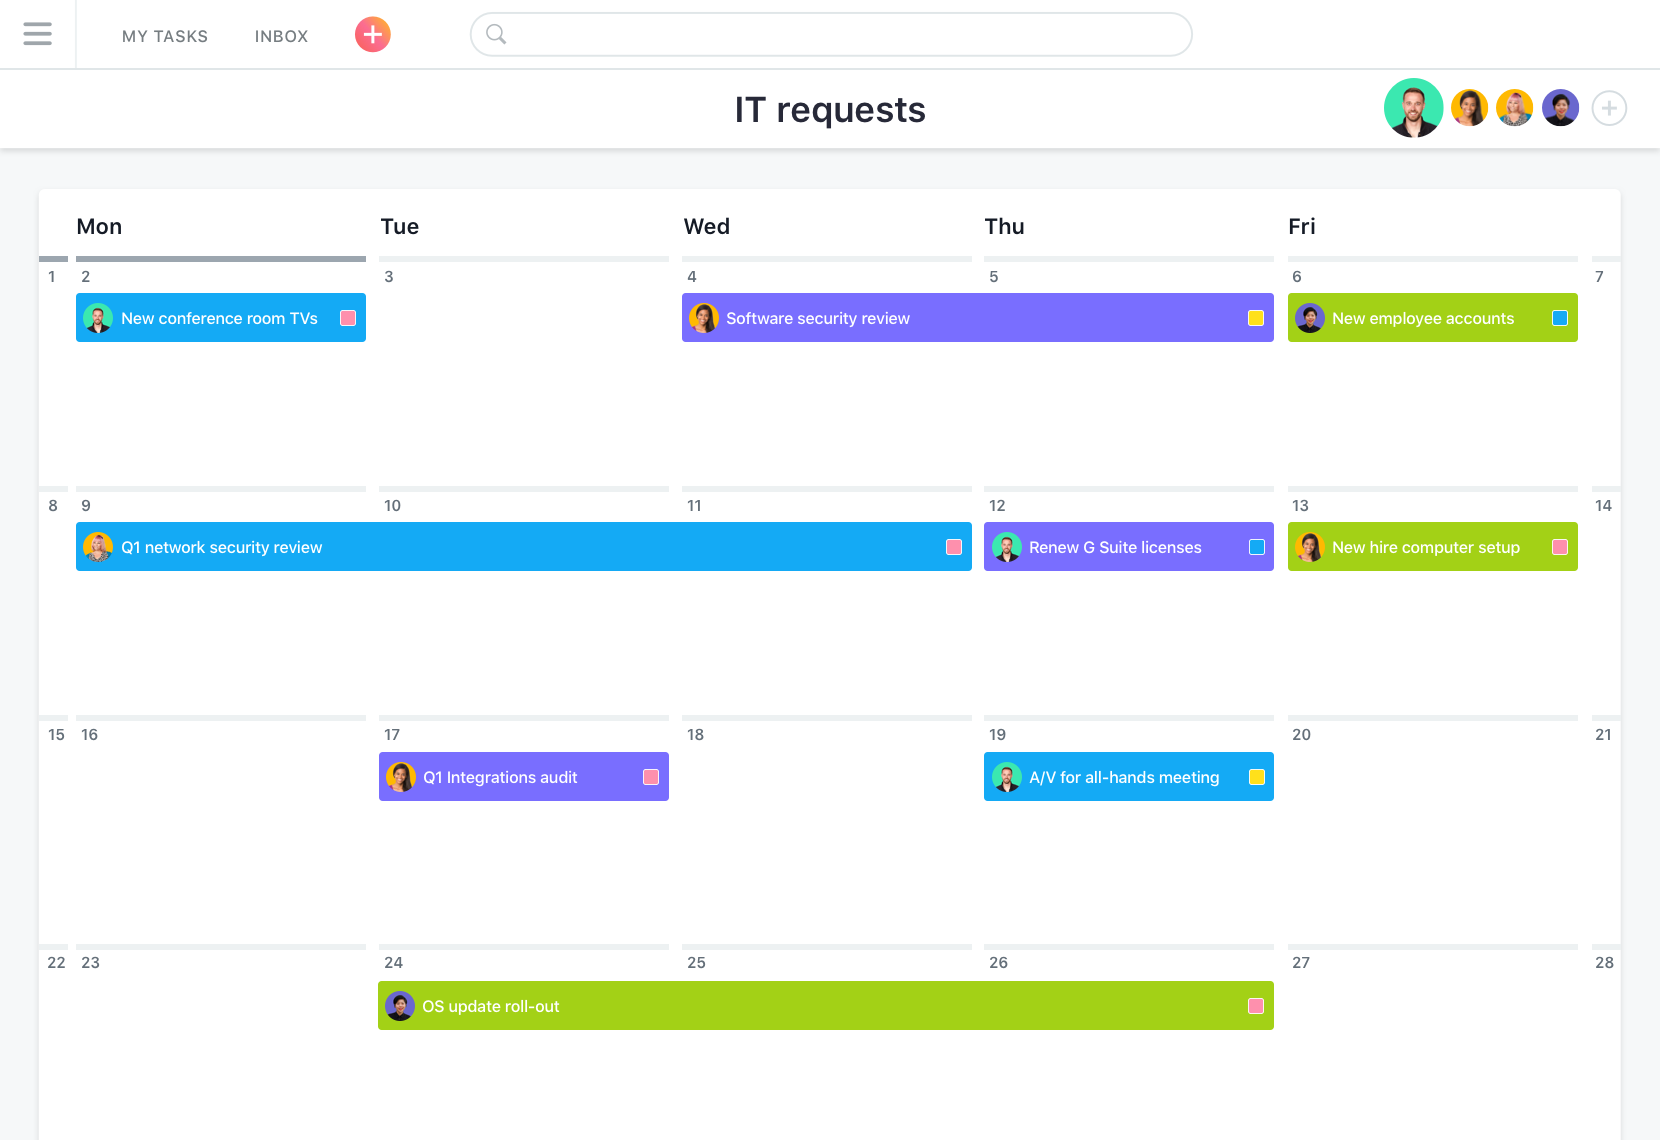 Calendario Asana, Asana: Single Sign-On (SSO), Task Manager, importare ed esportare dati (CSV, XLS)